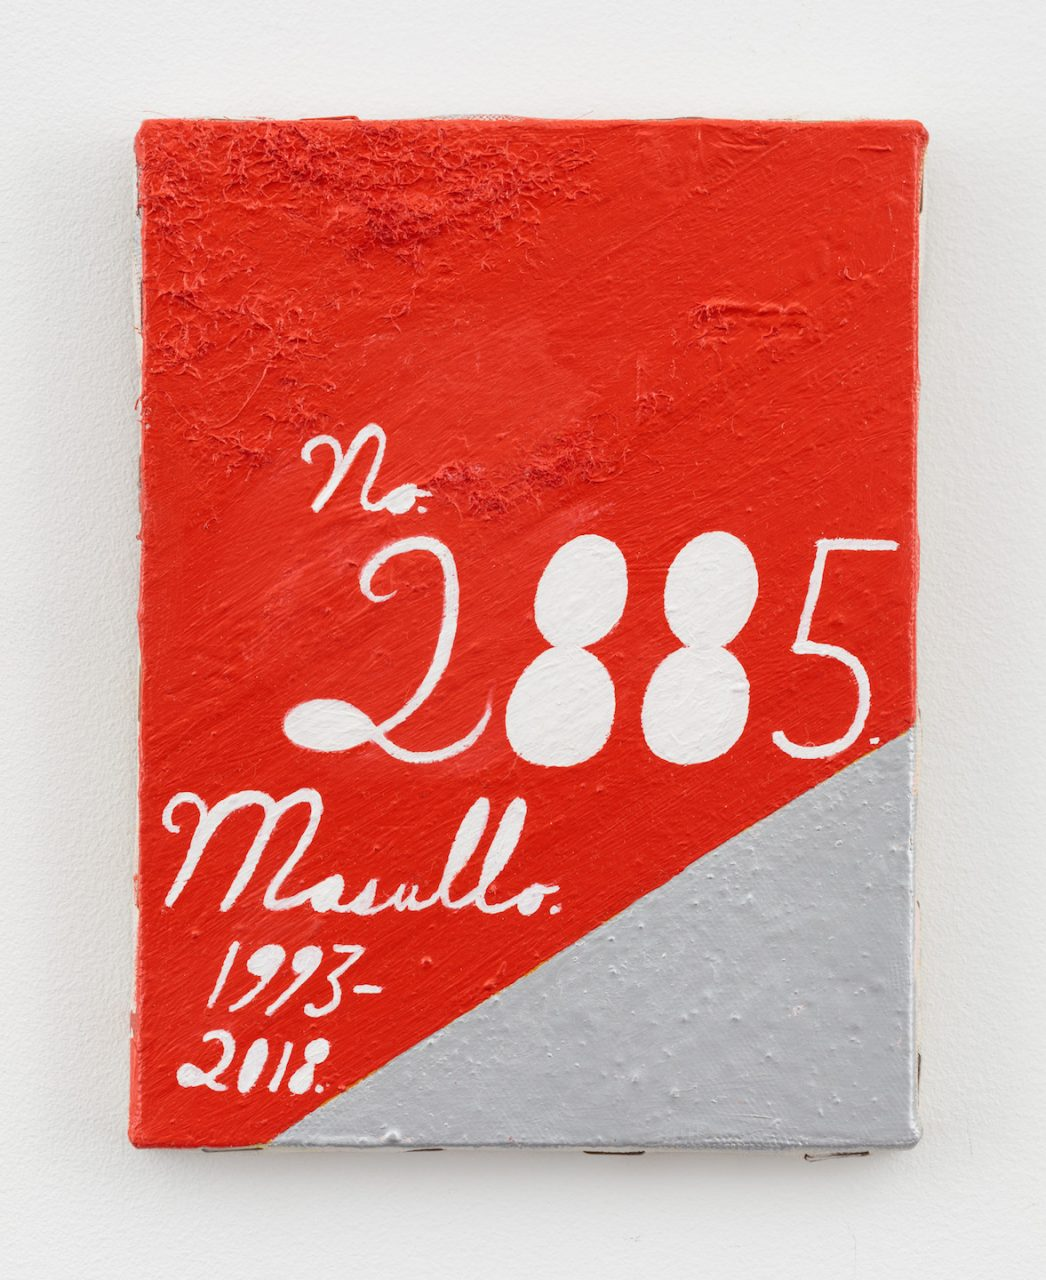 Recent Paintings | 2885, 1993-2018